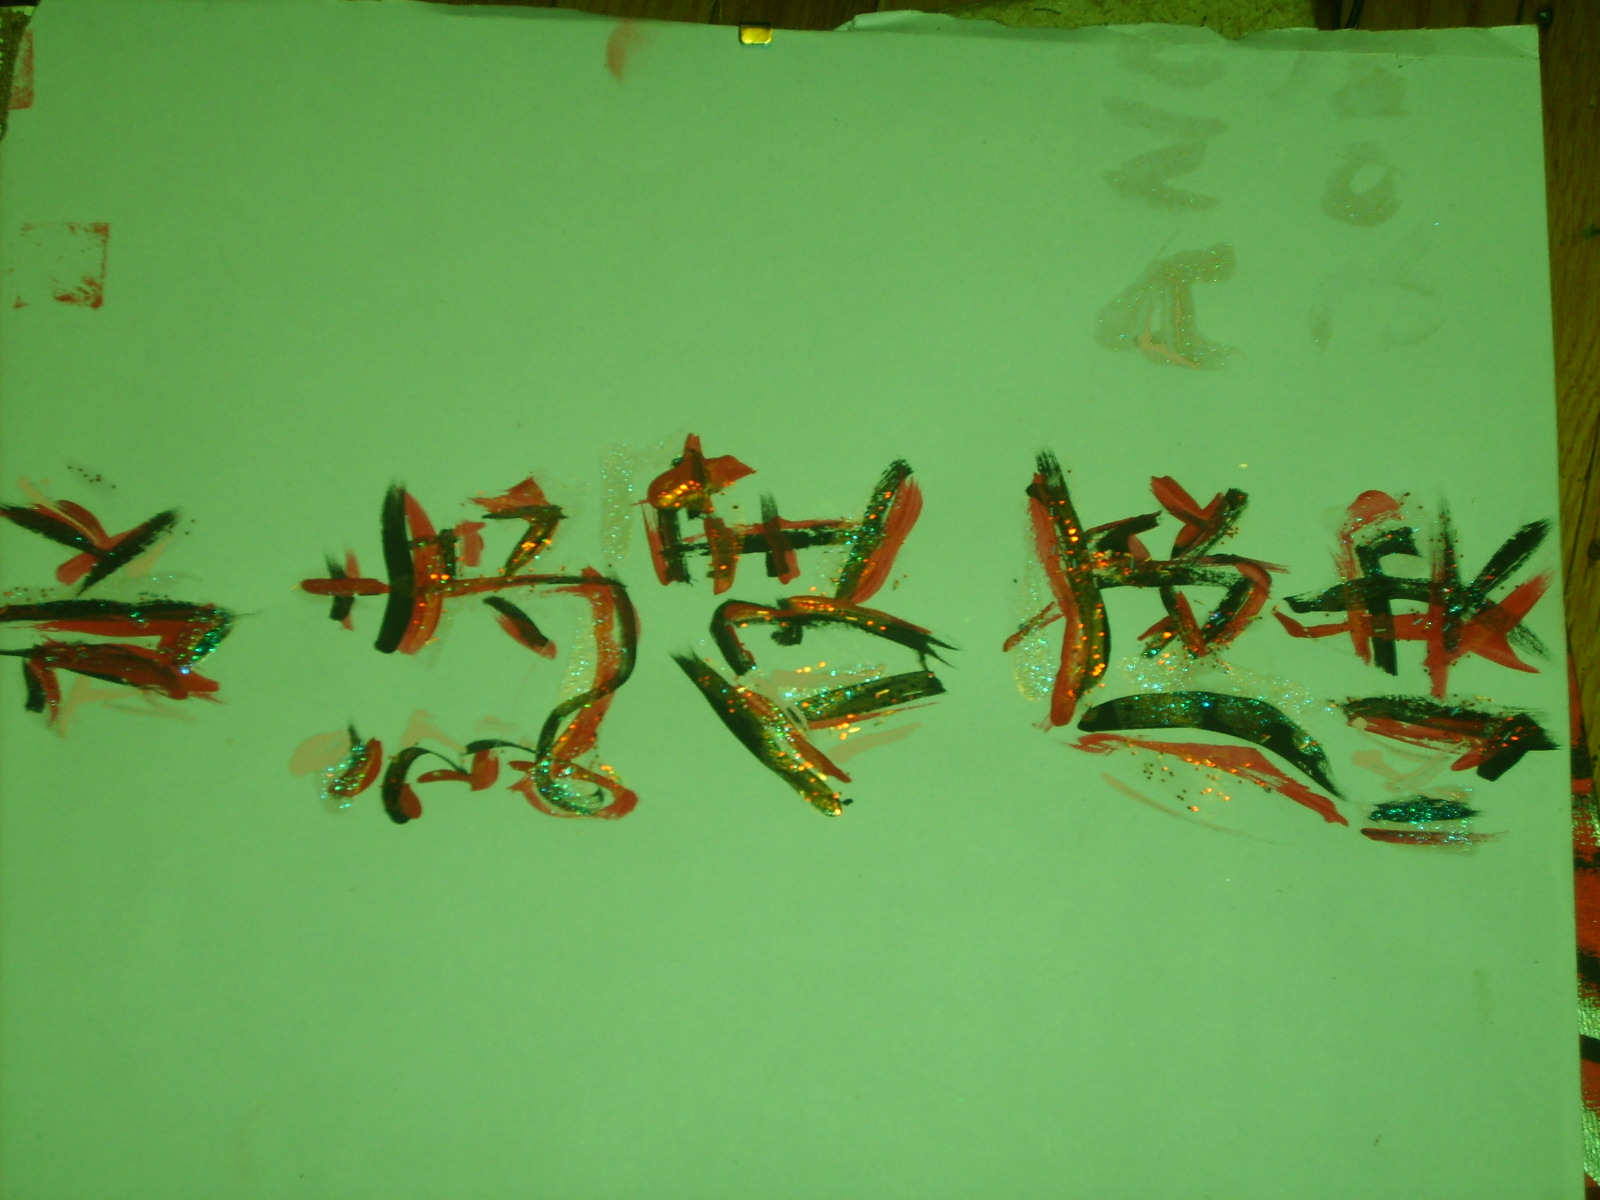 Chinese Symbols In Your Namethis One Says Angela I Well Do